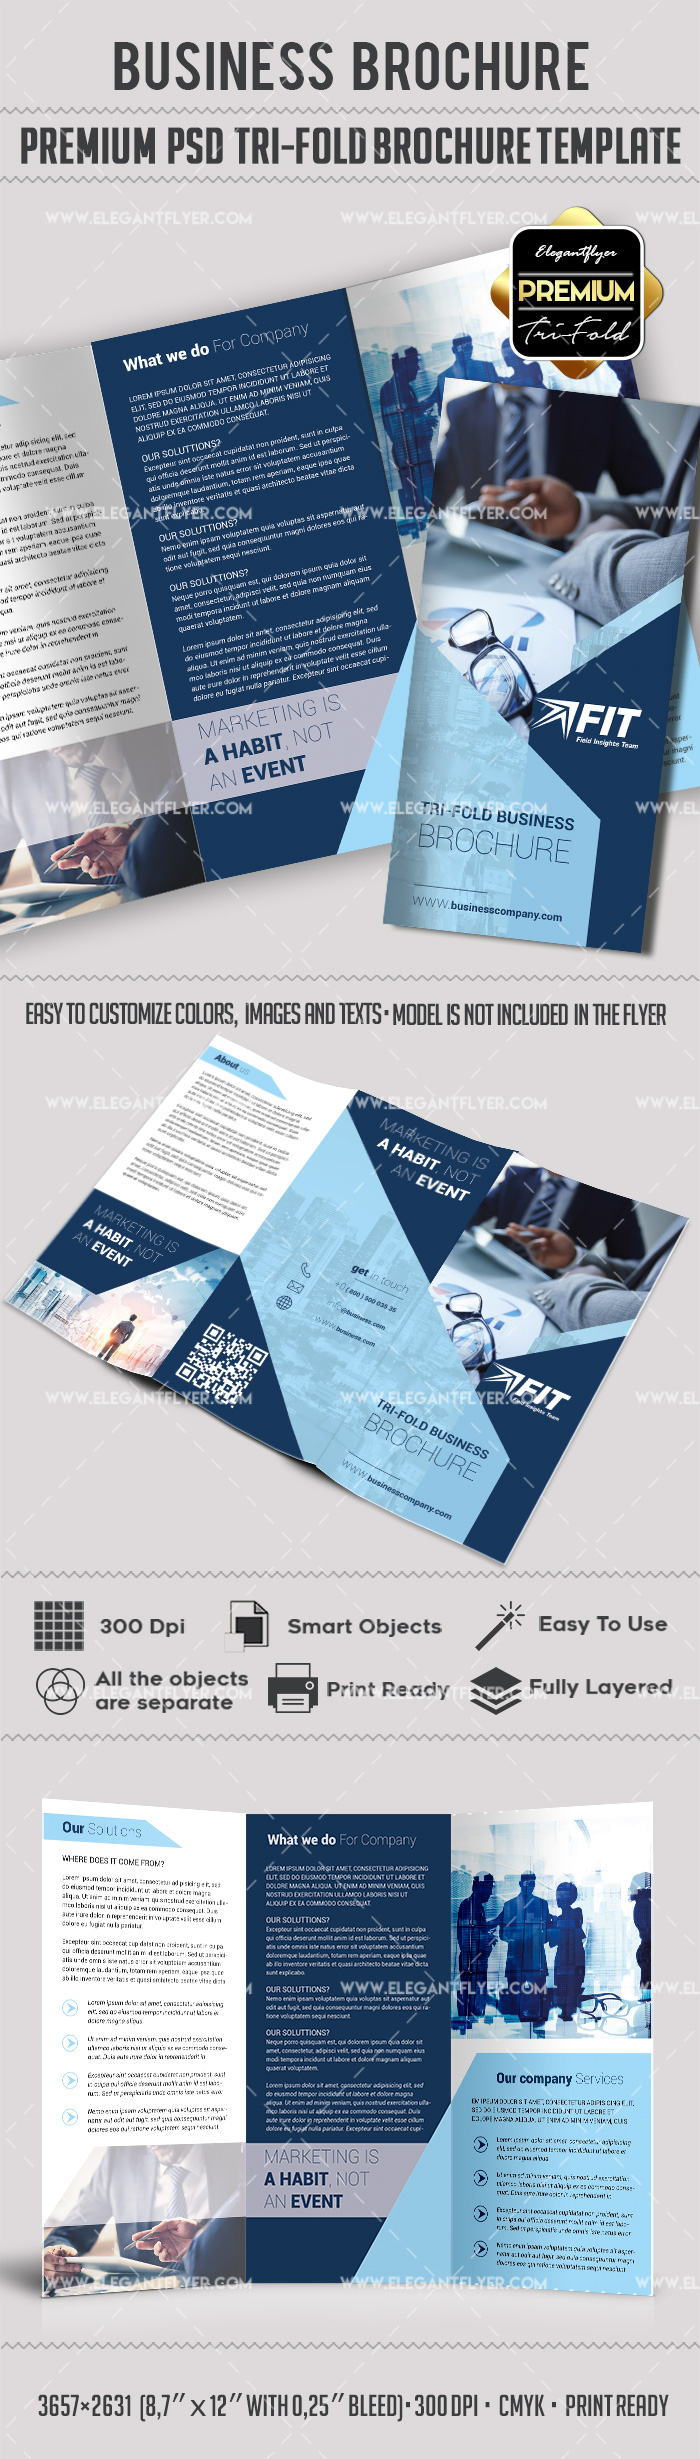 business brochure templates free - photoshop brochure template by elegantflyer